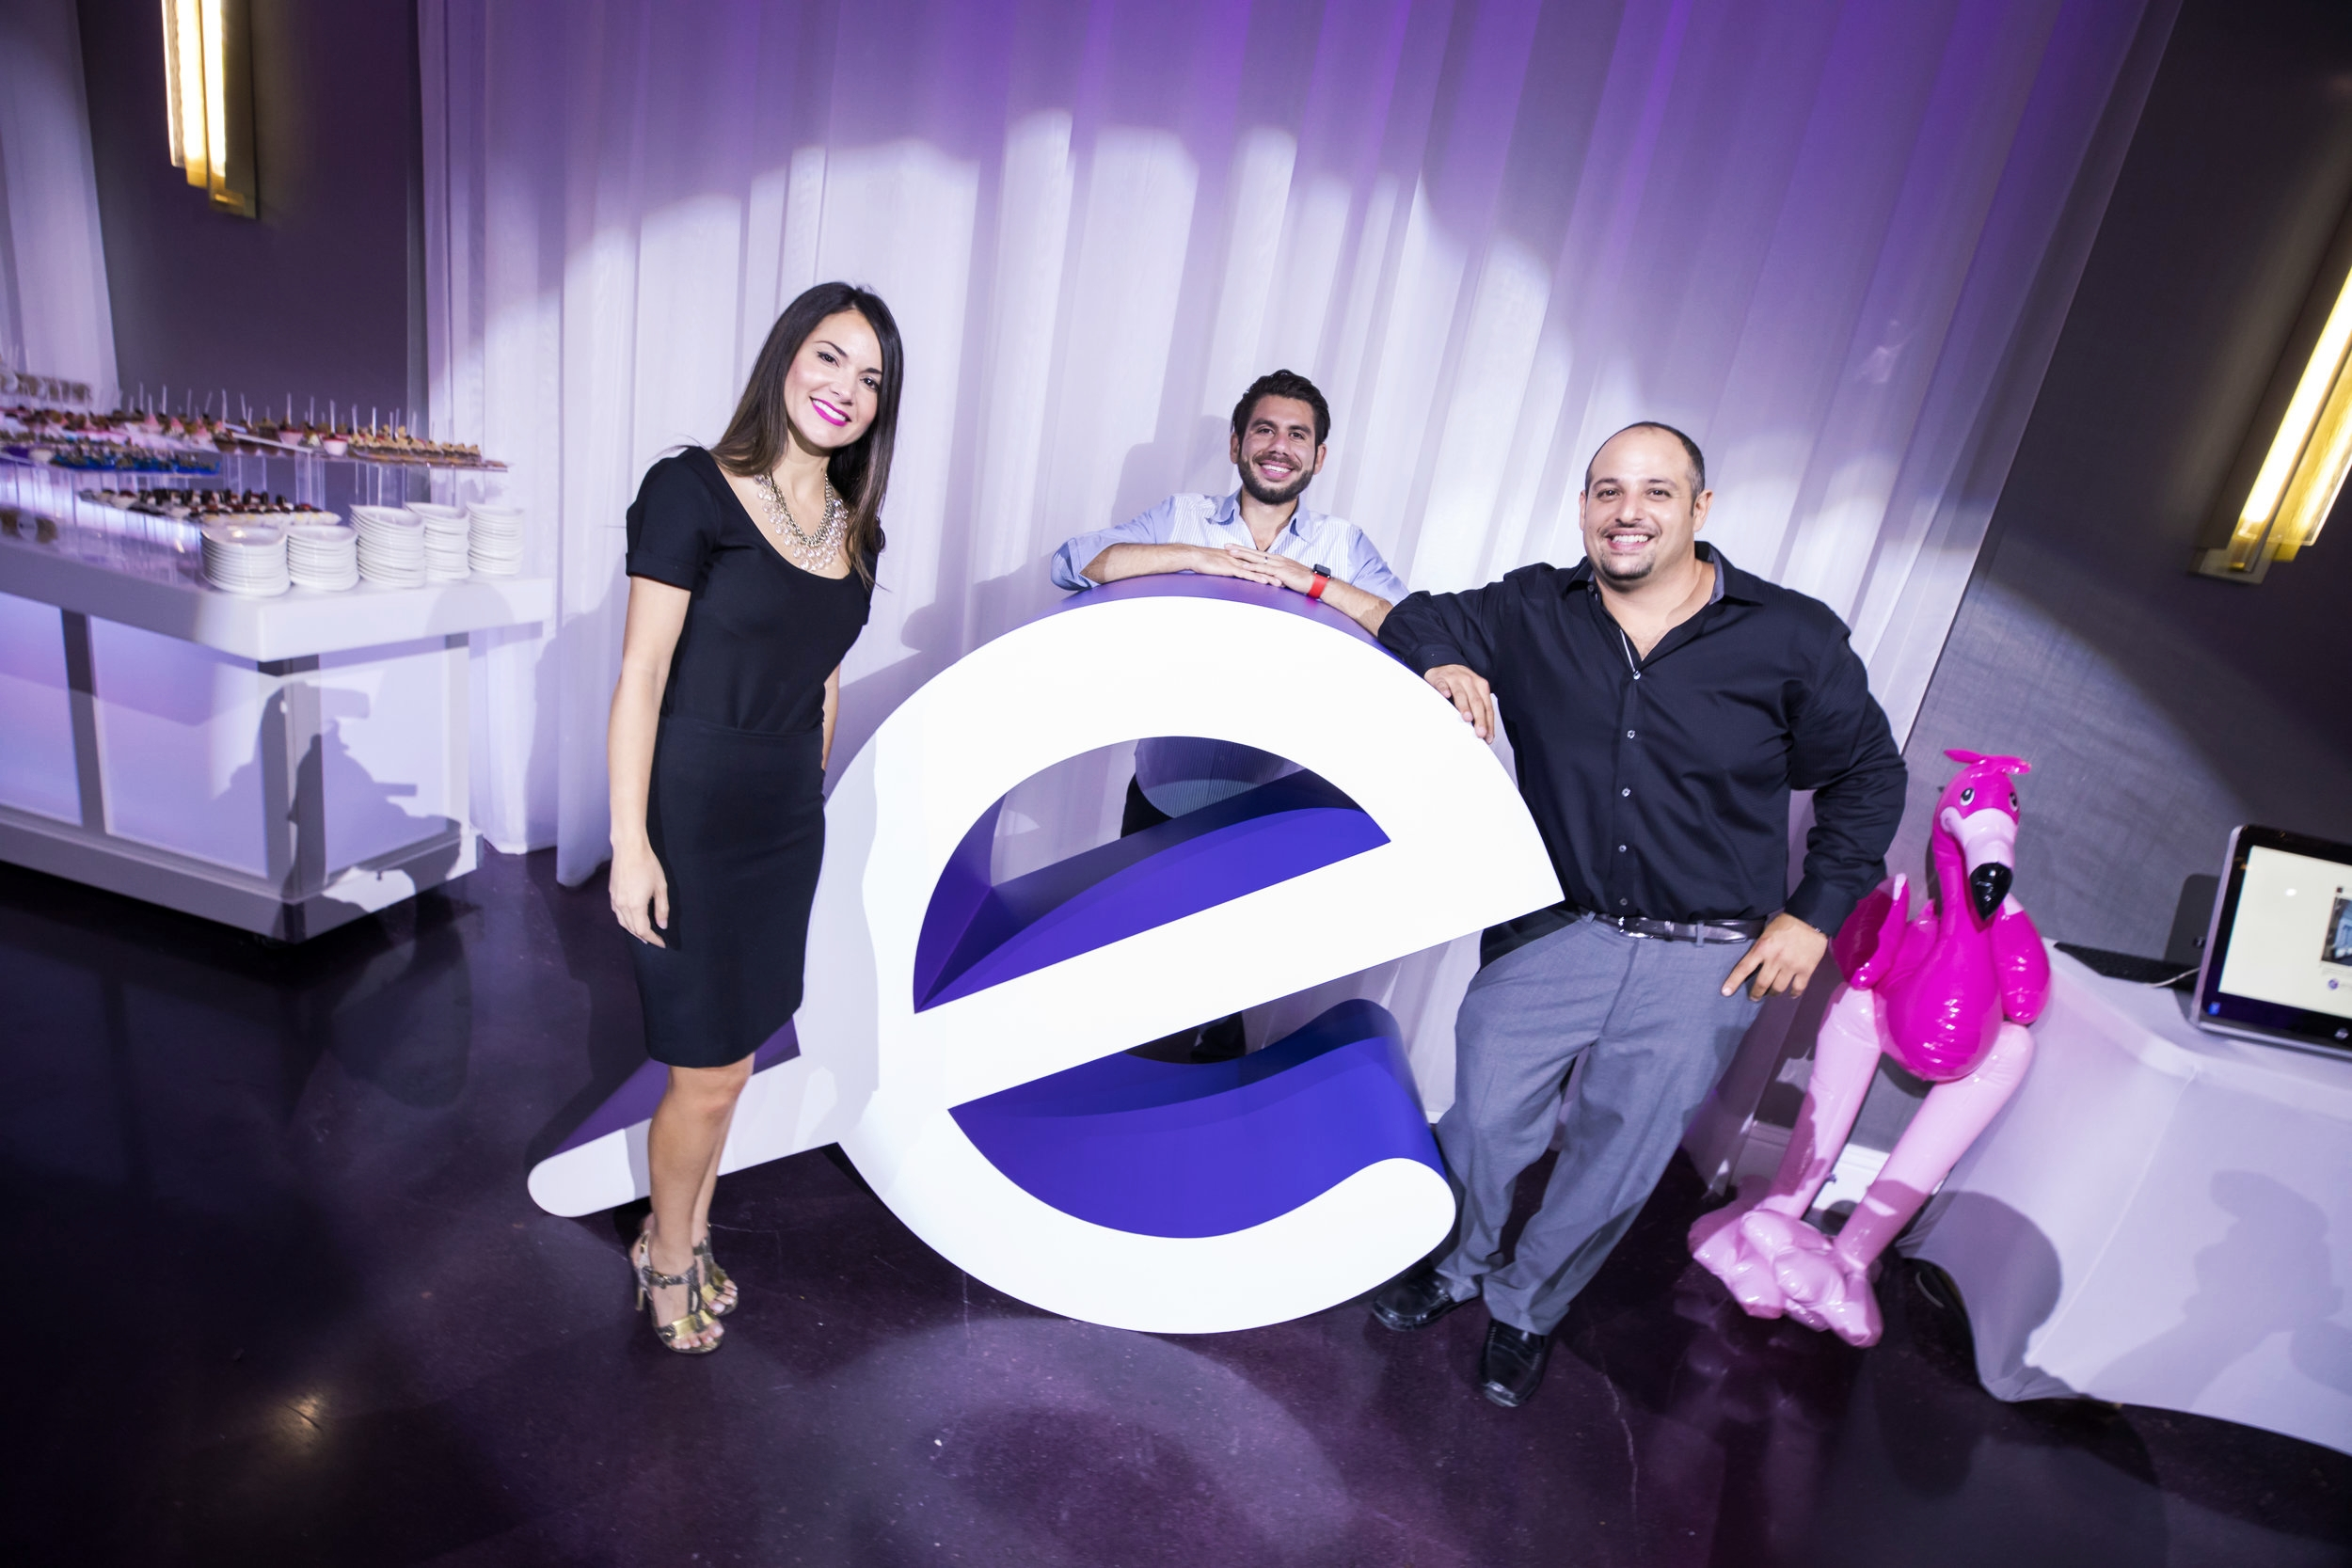 6-11-17 Emerge Opening Party-119 2.jpg